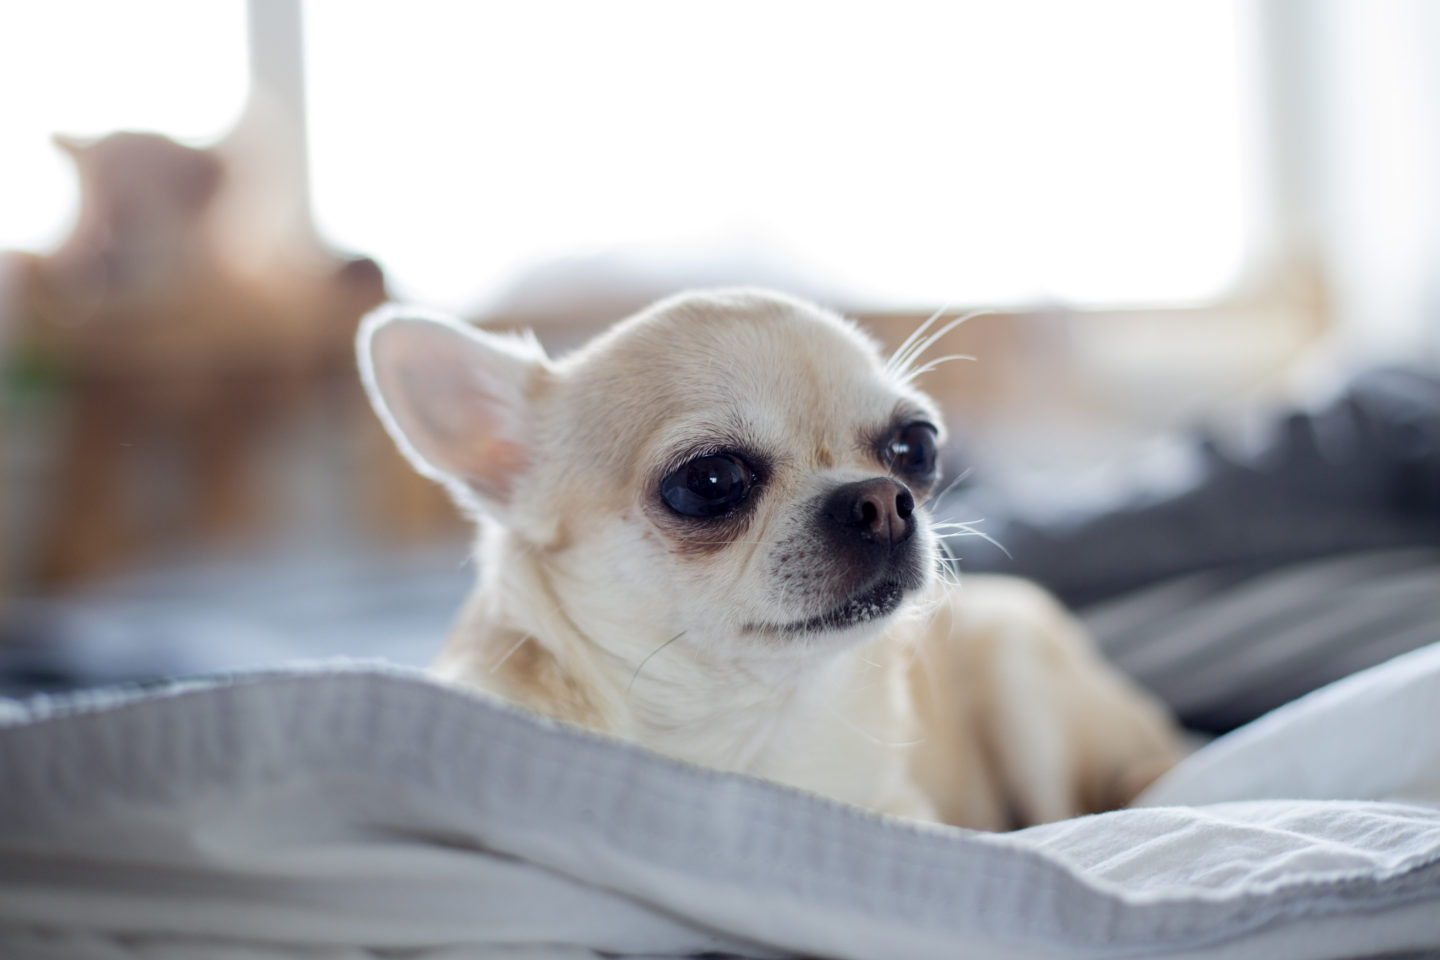 Senior chihuahua health: Illnesses to watch for